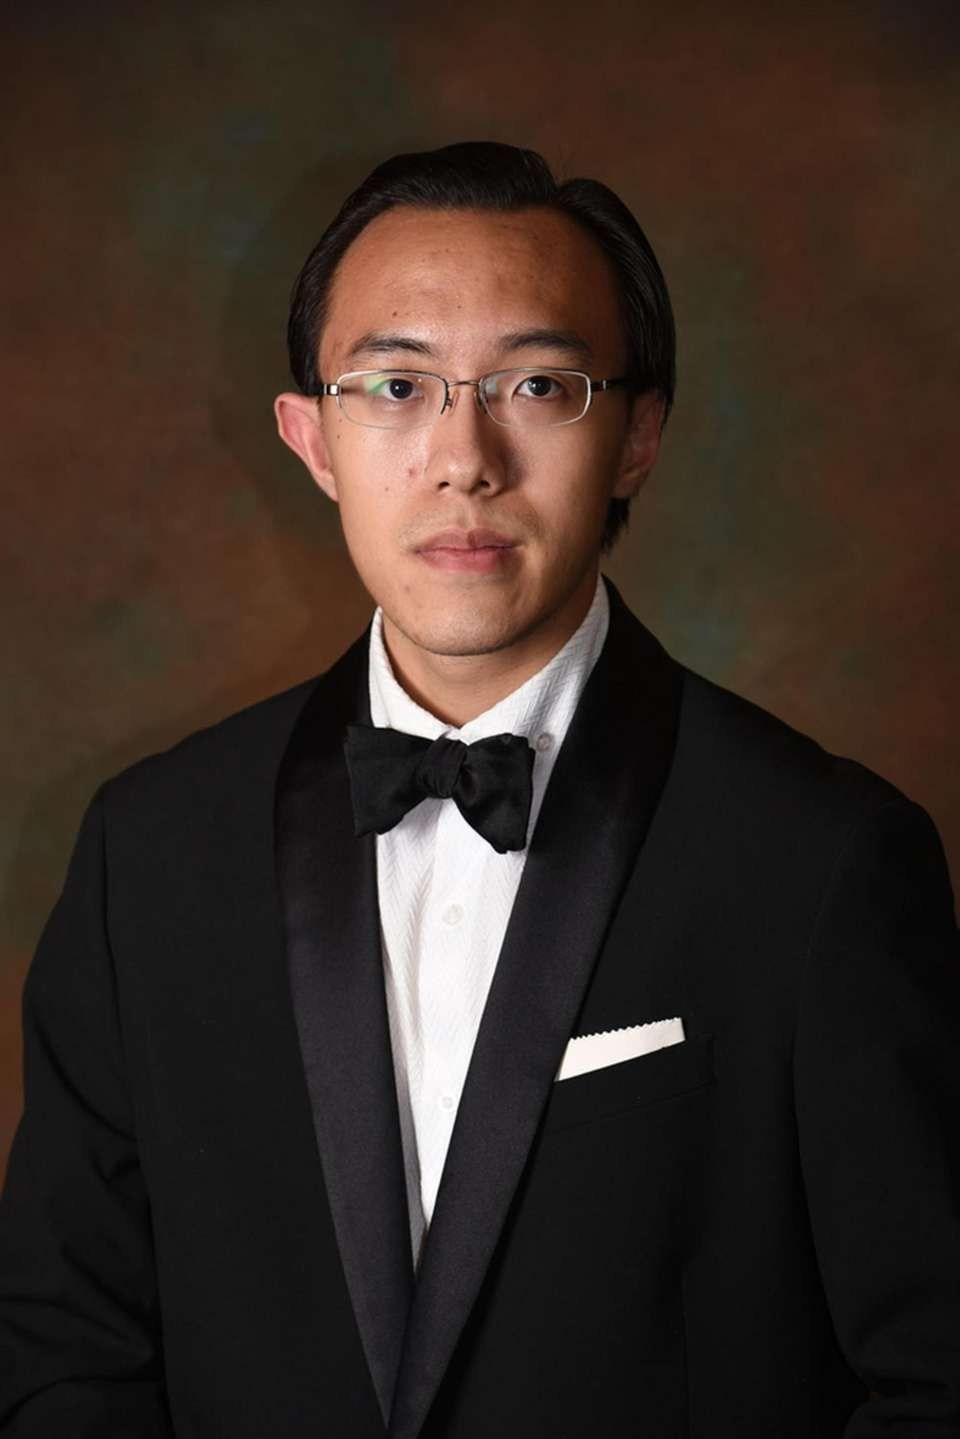 Syosset High School's Siyu Yang believes playing music